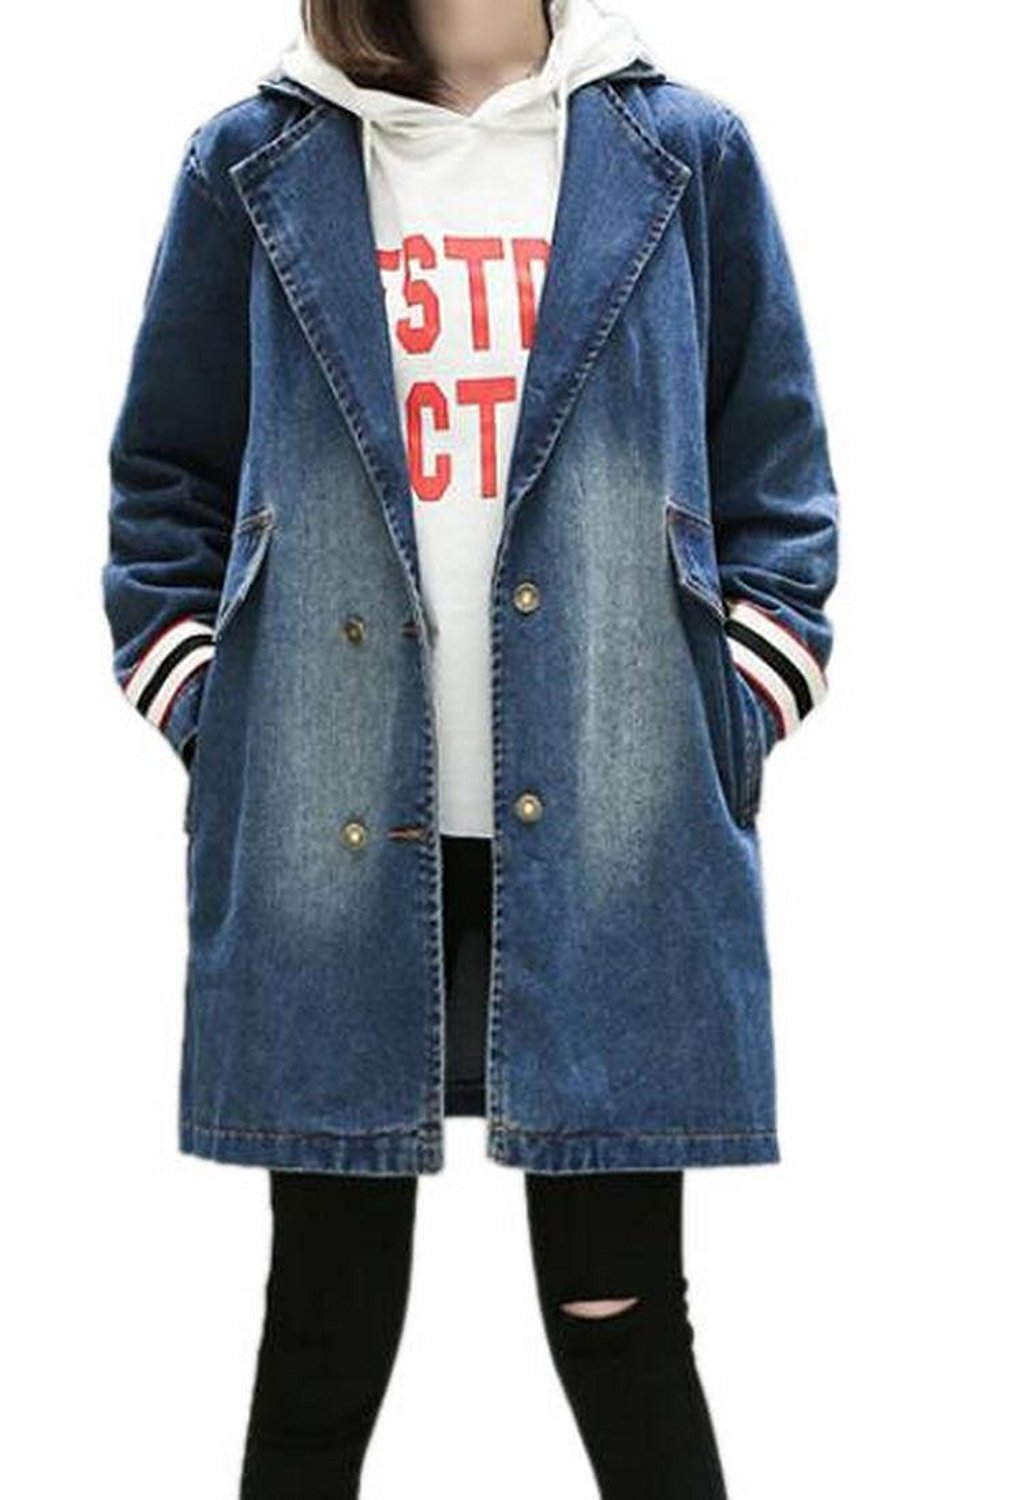 ONTBYB Womens Lapel Long Sleeve Double-Breasted Denim Jacket Trench Coat Outwear